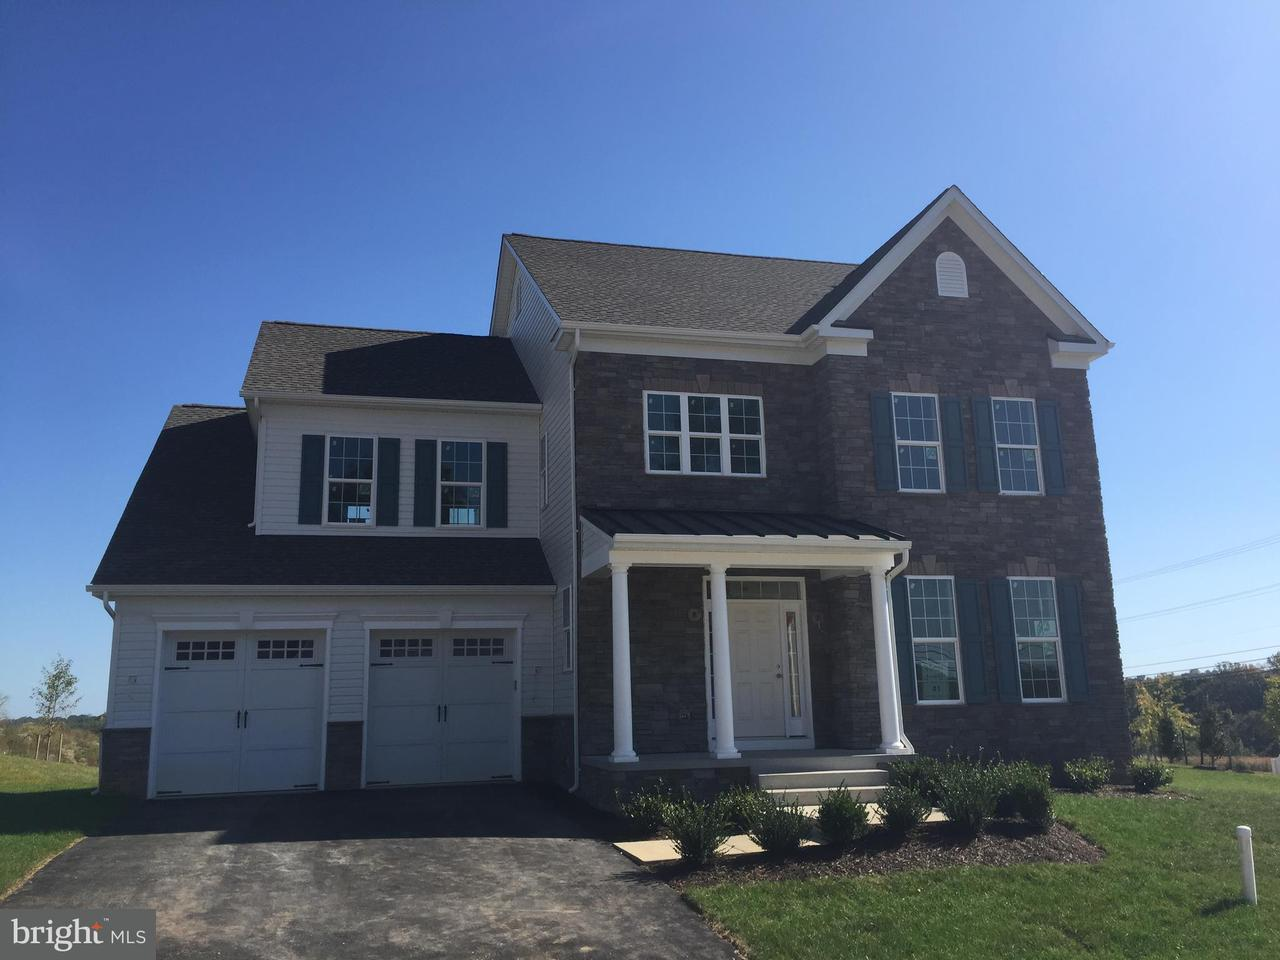 Vivienda unifamiliar por un Venta en 10801 WHITE TRILLIUM Road 10801 WHITE TRILLIUM Road Perry Hall, Maryland 21128 Estados Unidos